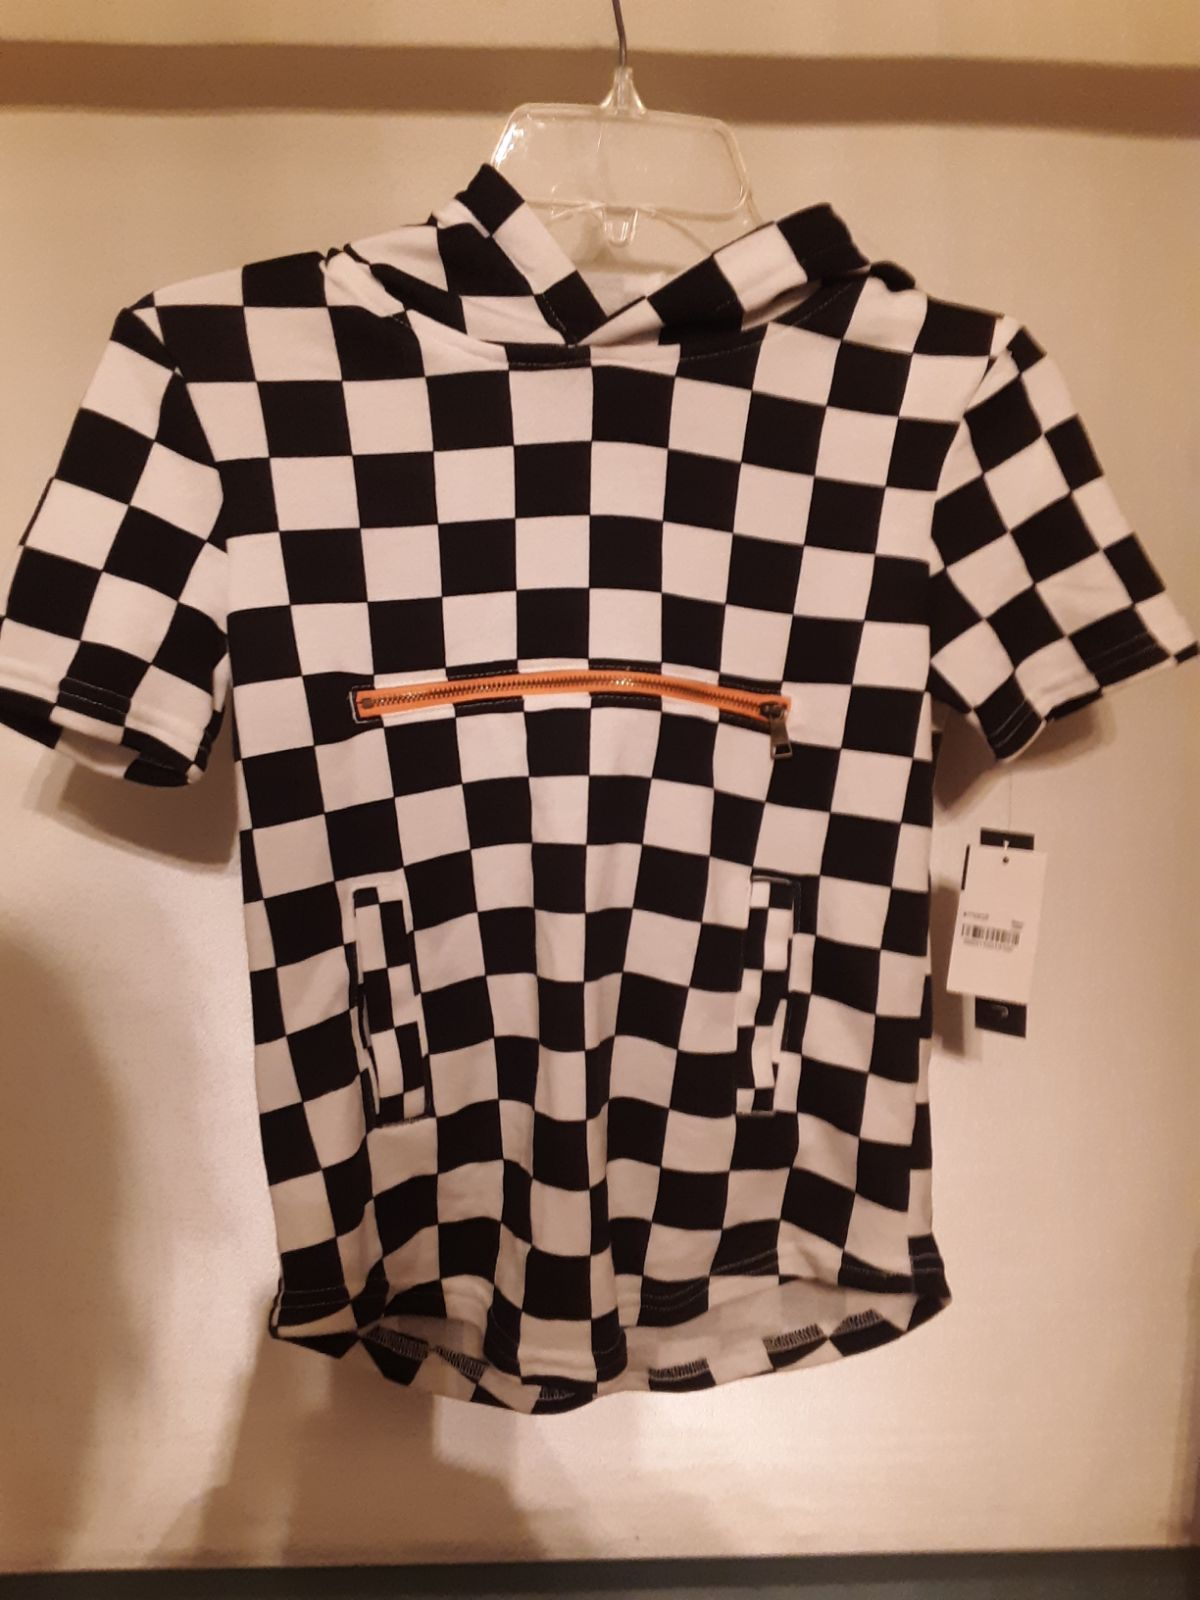 Jawalker checkered top